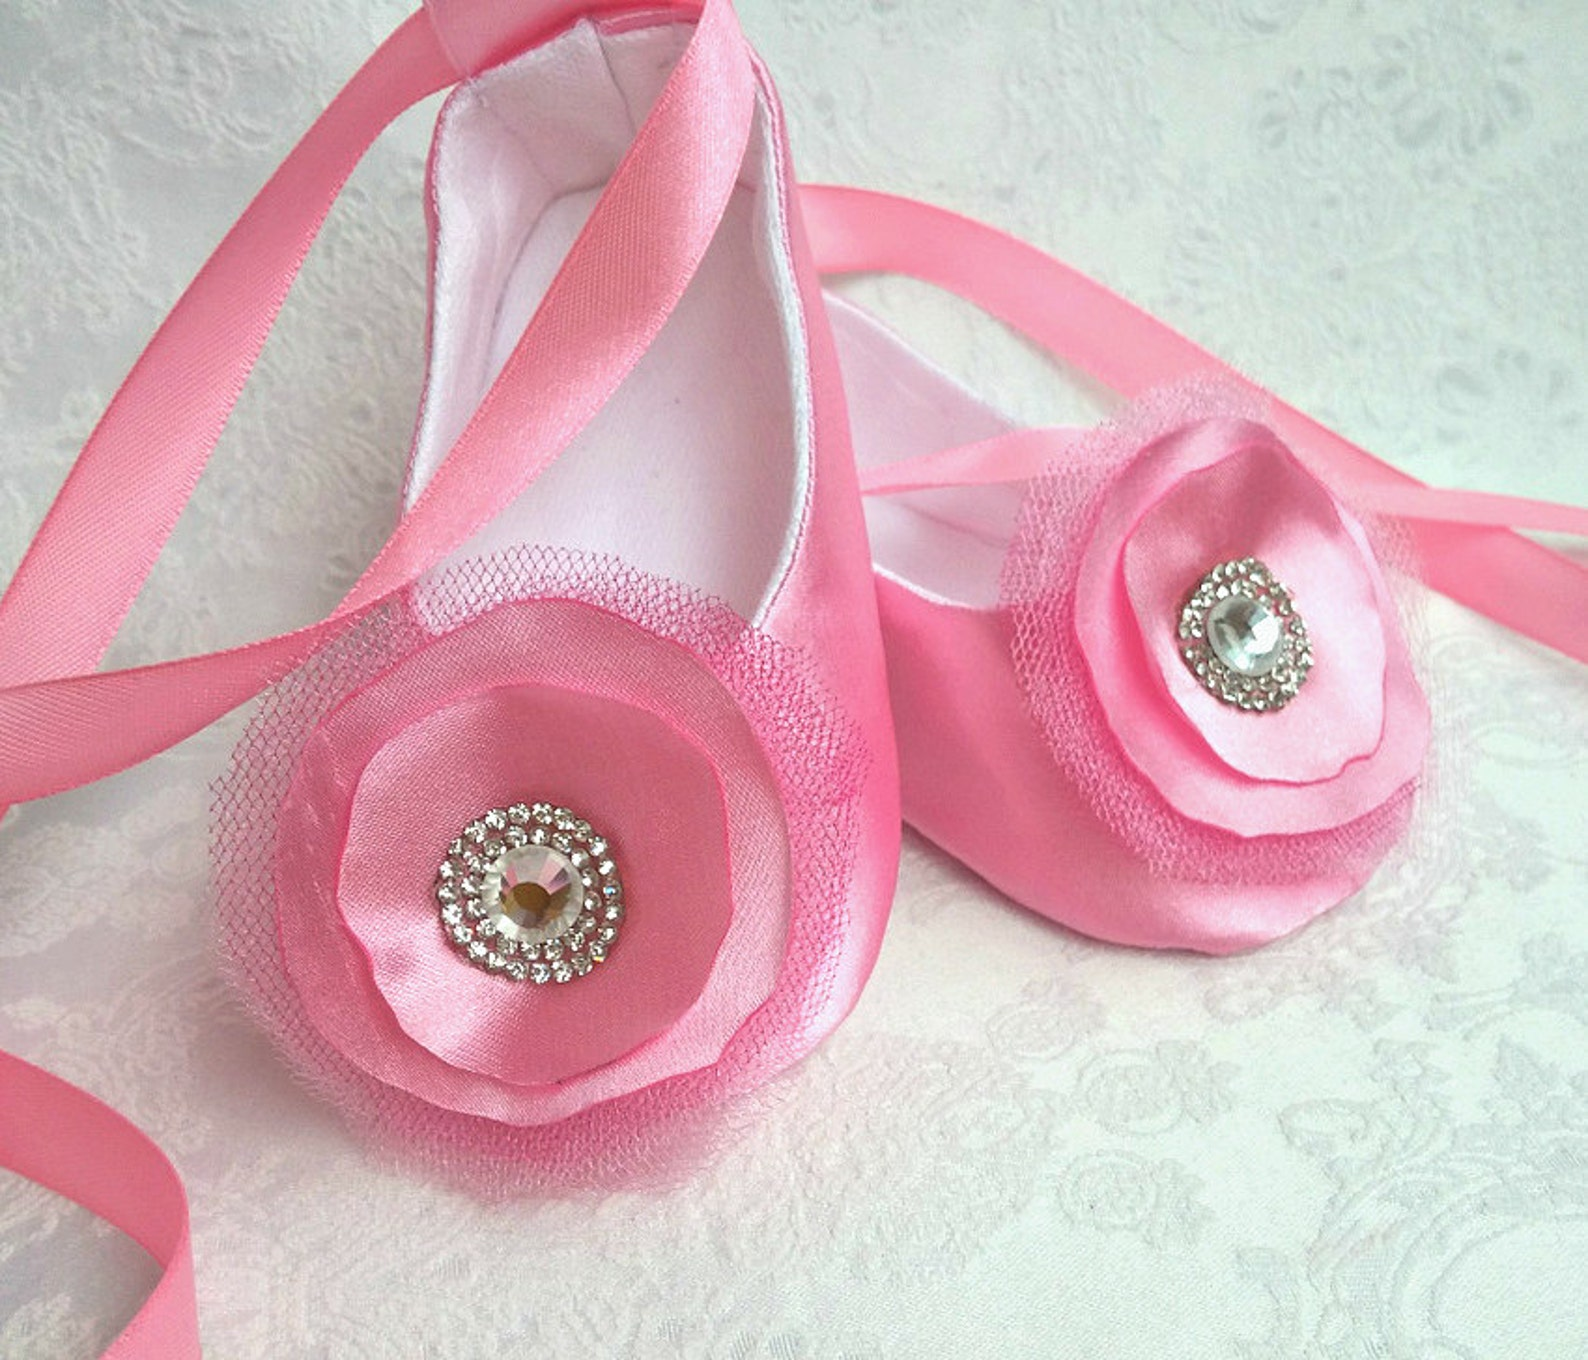 baby flower pink shoes with a sparkly rhinestone, wedding shoes, satin ballet flats, infant crib booties,toddler satin slippers,